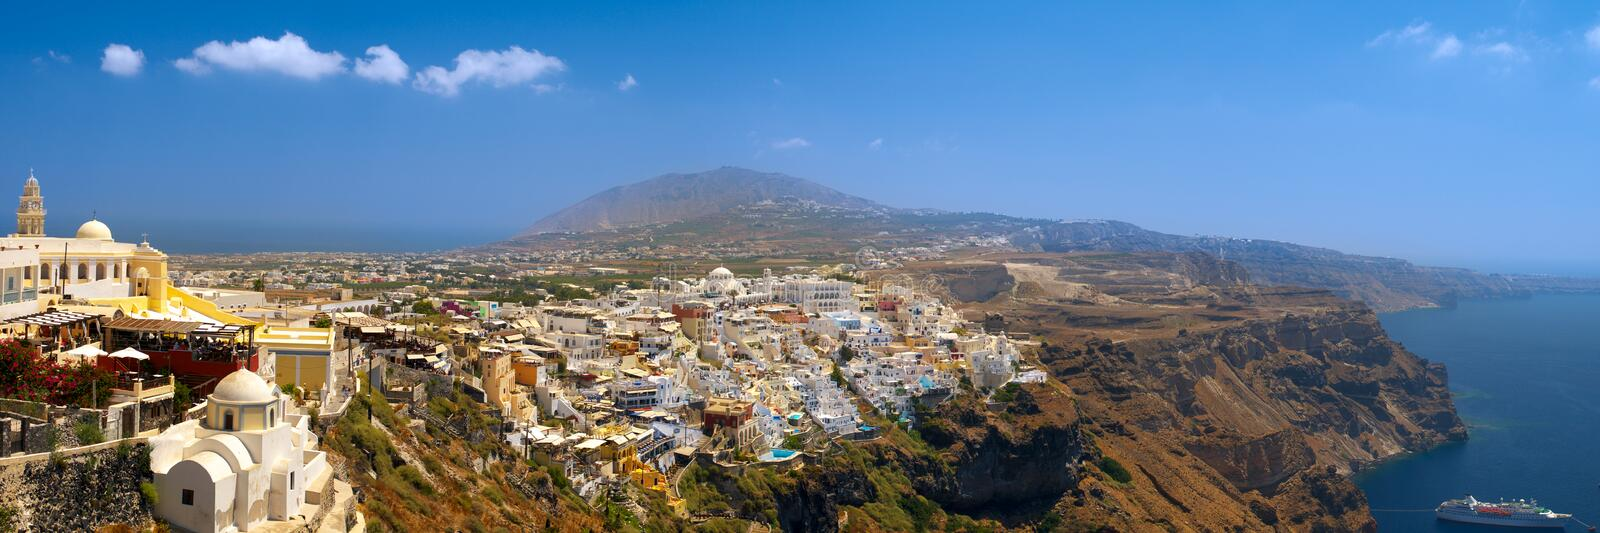 Amazing panoramic view of Thira stock photography